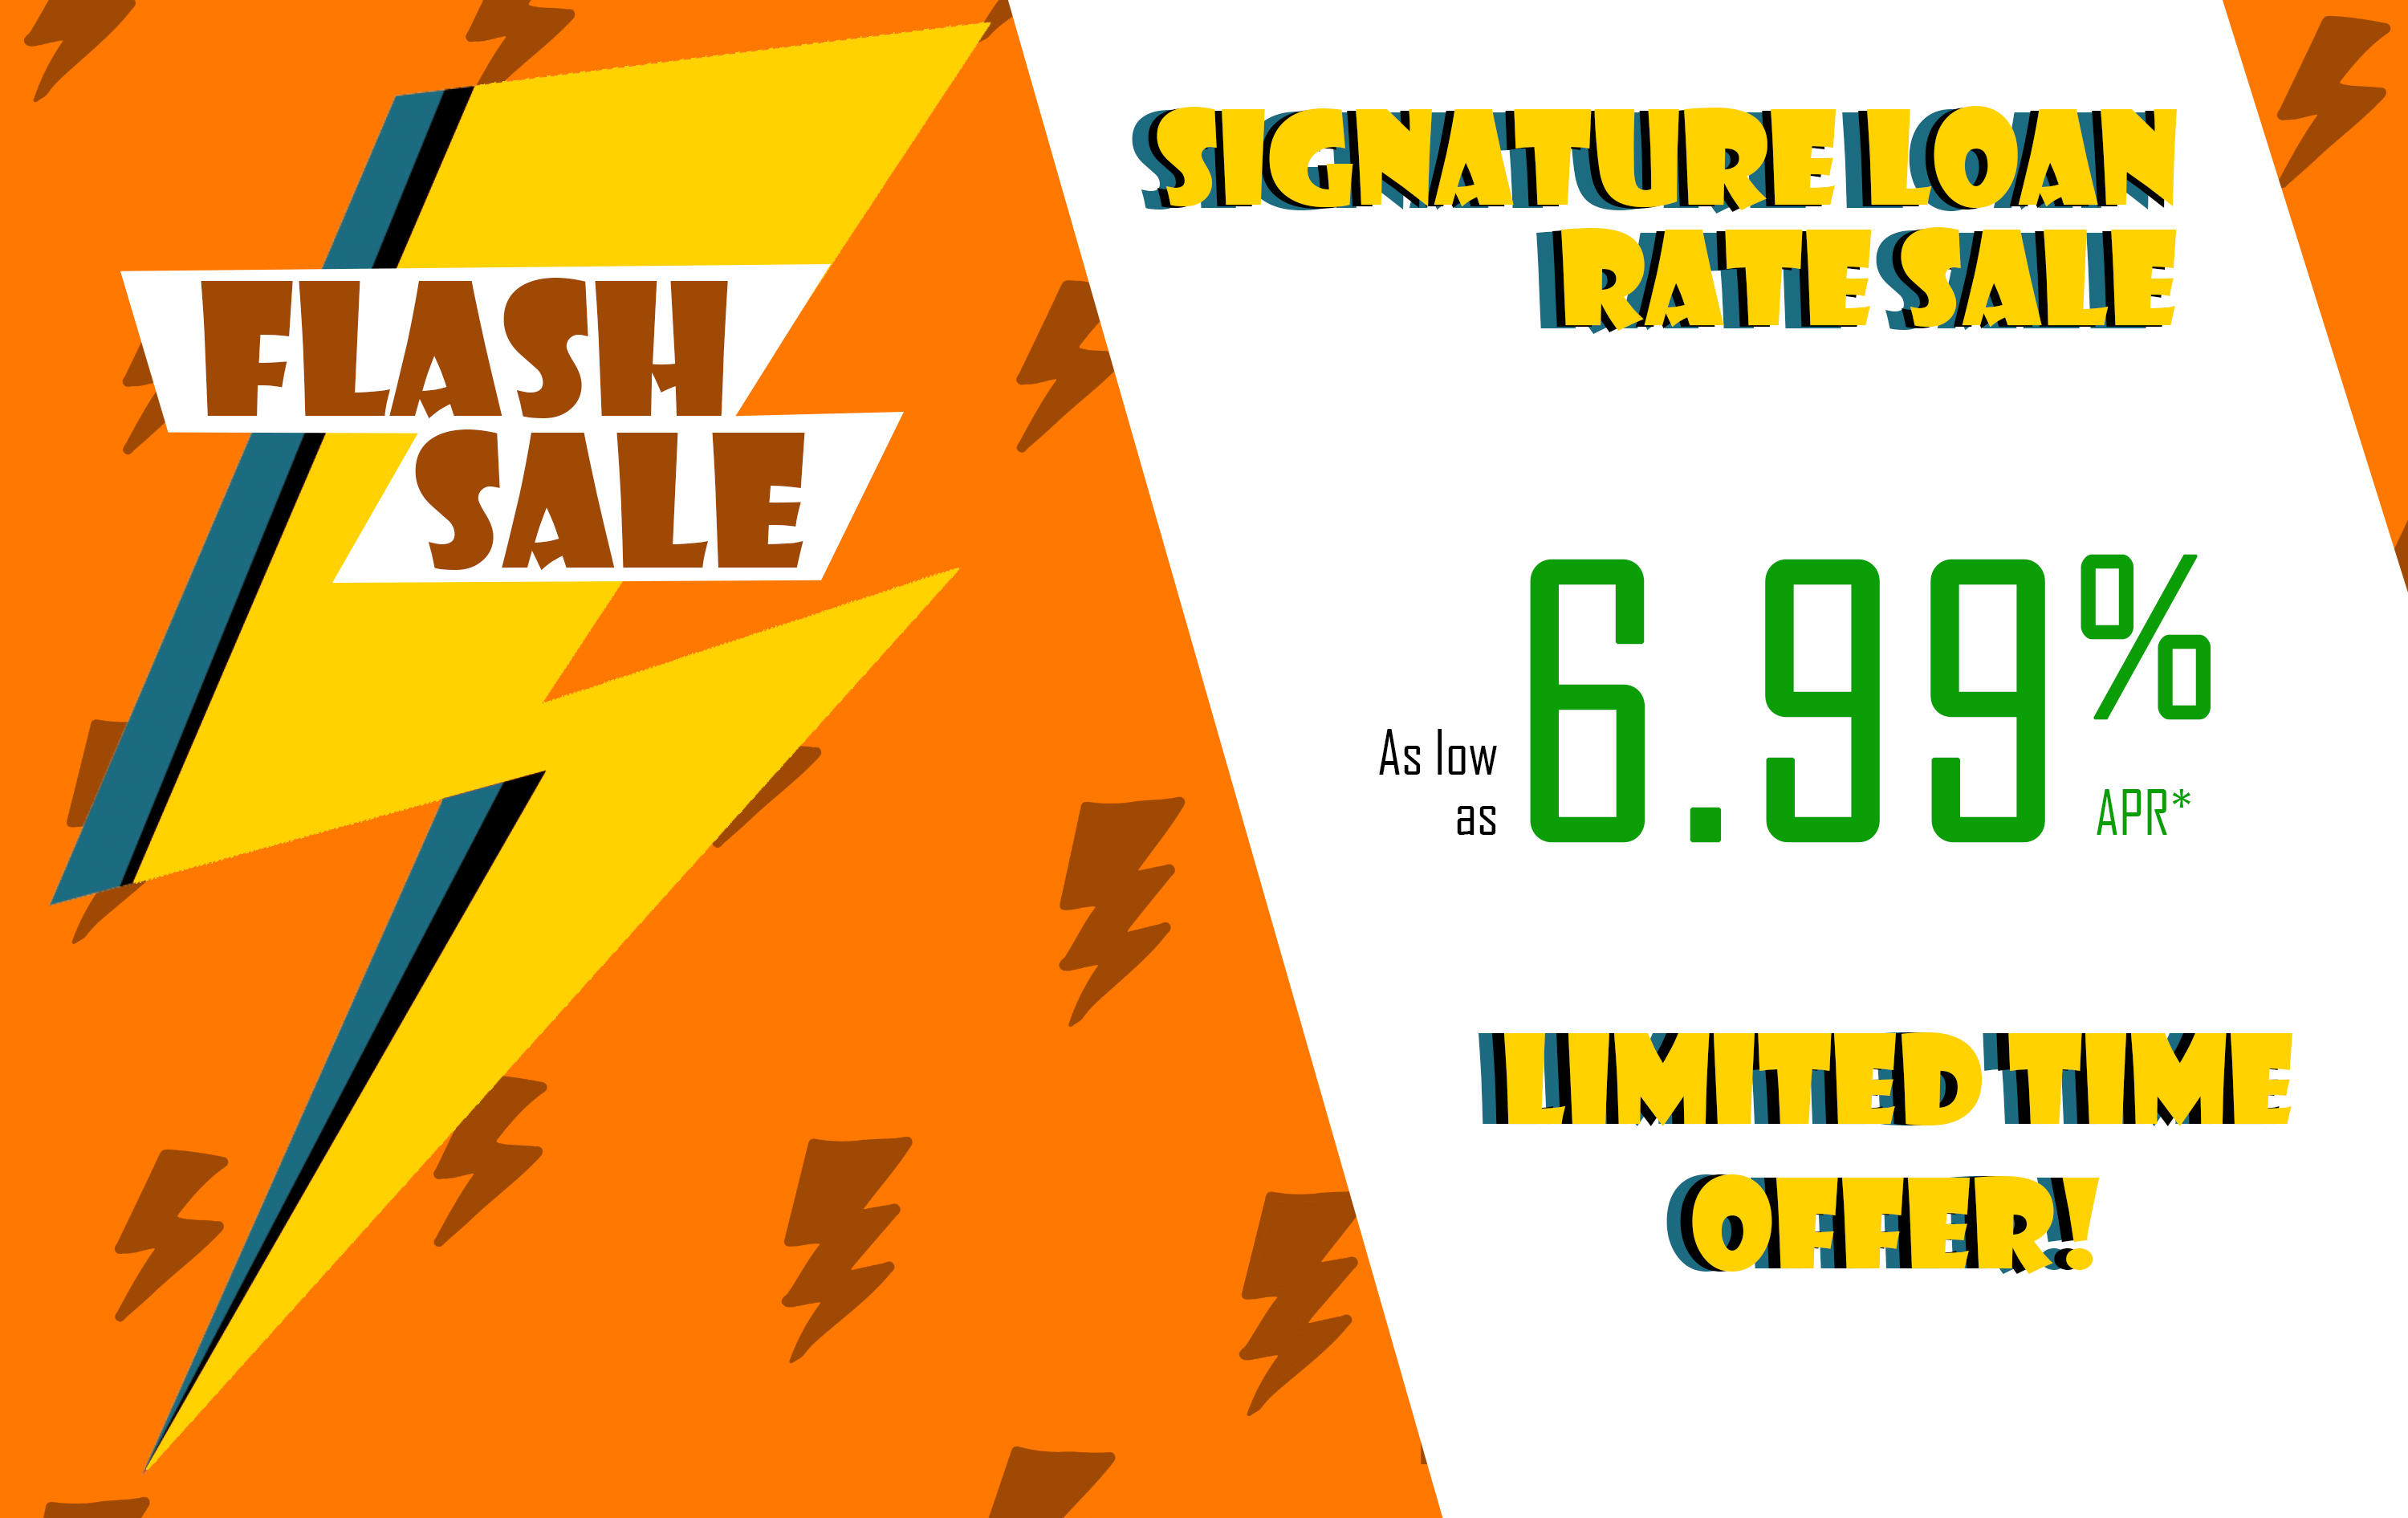 Image: Signature loan flash sale! Rates as low as 6.99% APR. See below for readable text